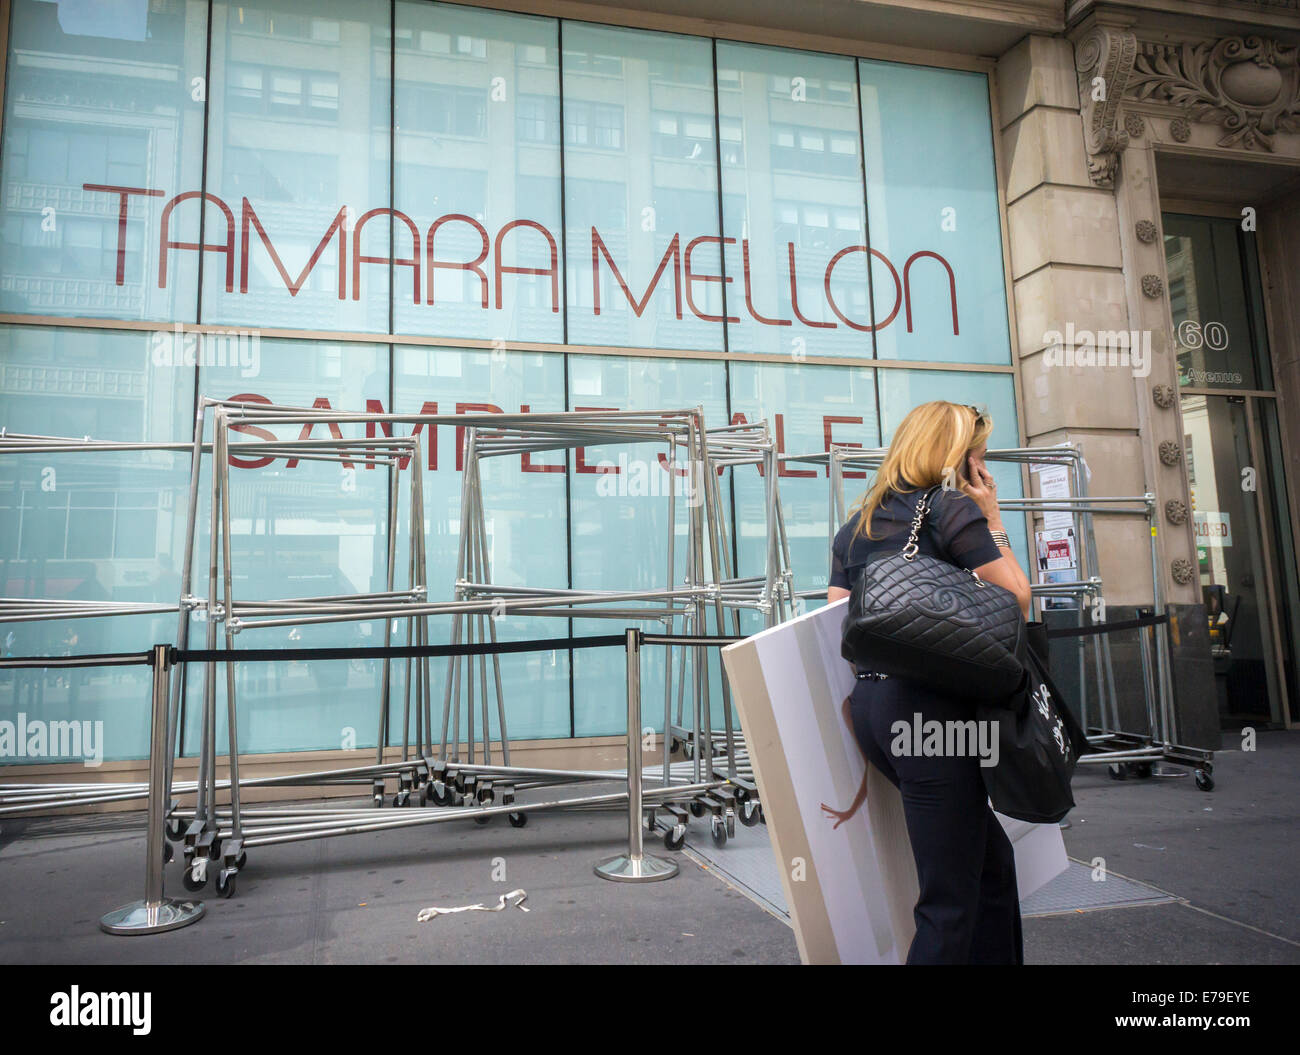 Unused clothing racks outside a Tamara Mellon sample sale in New ...